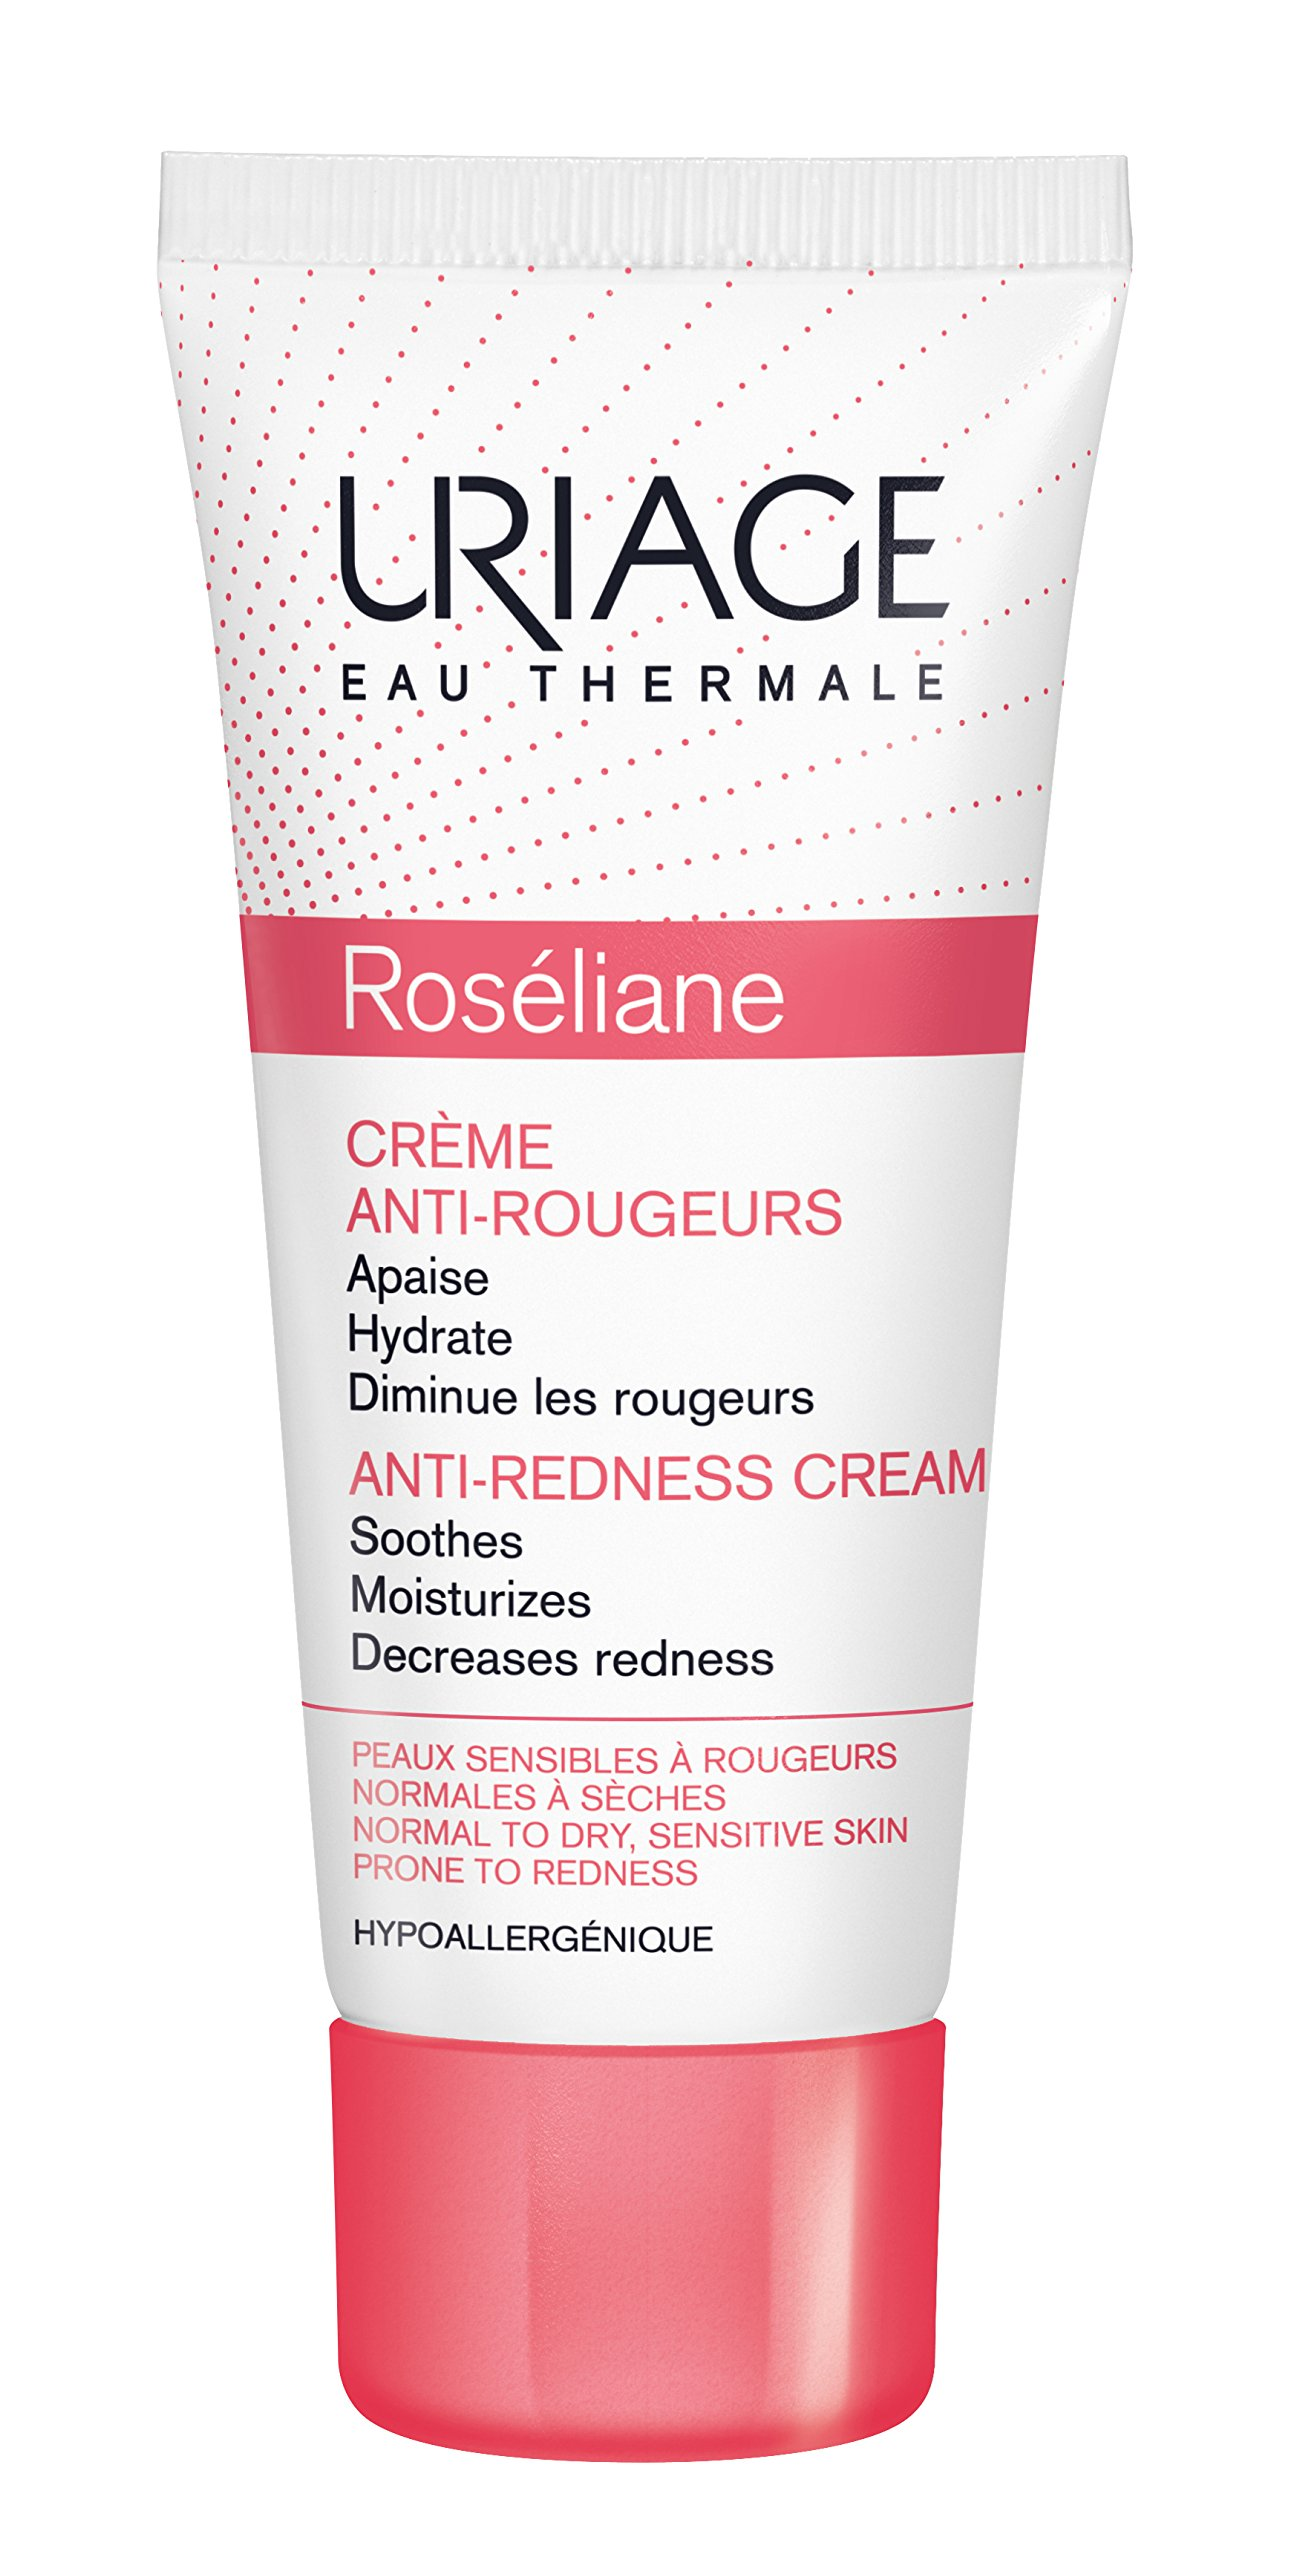 Uriage Roseliane Anti-Redness Face Cream 1.35 fl.oz. | Hydrating Moisturizer for Sensitive Skin Prone to Redness | Skincare Treatment that Inhibits the Key Factors that Cause Rosacea / Couperose